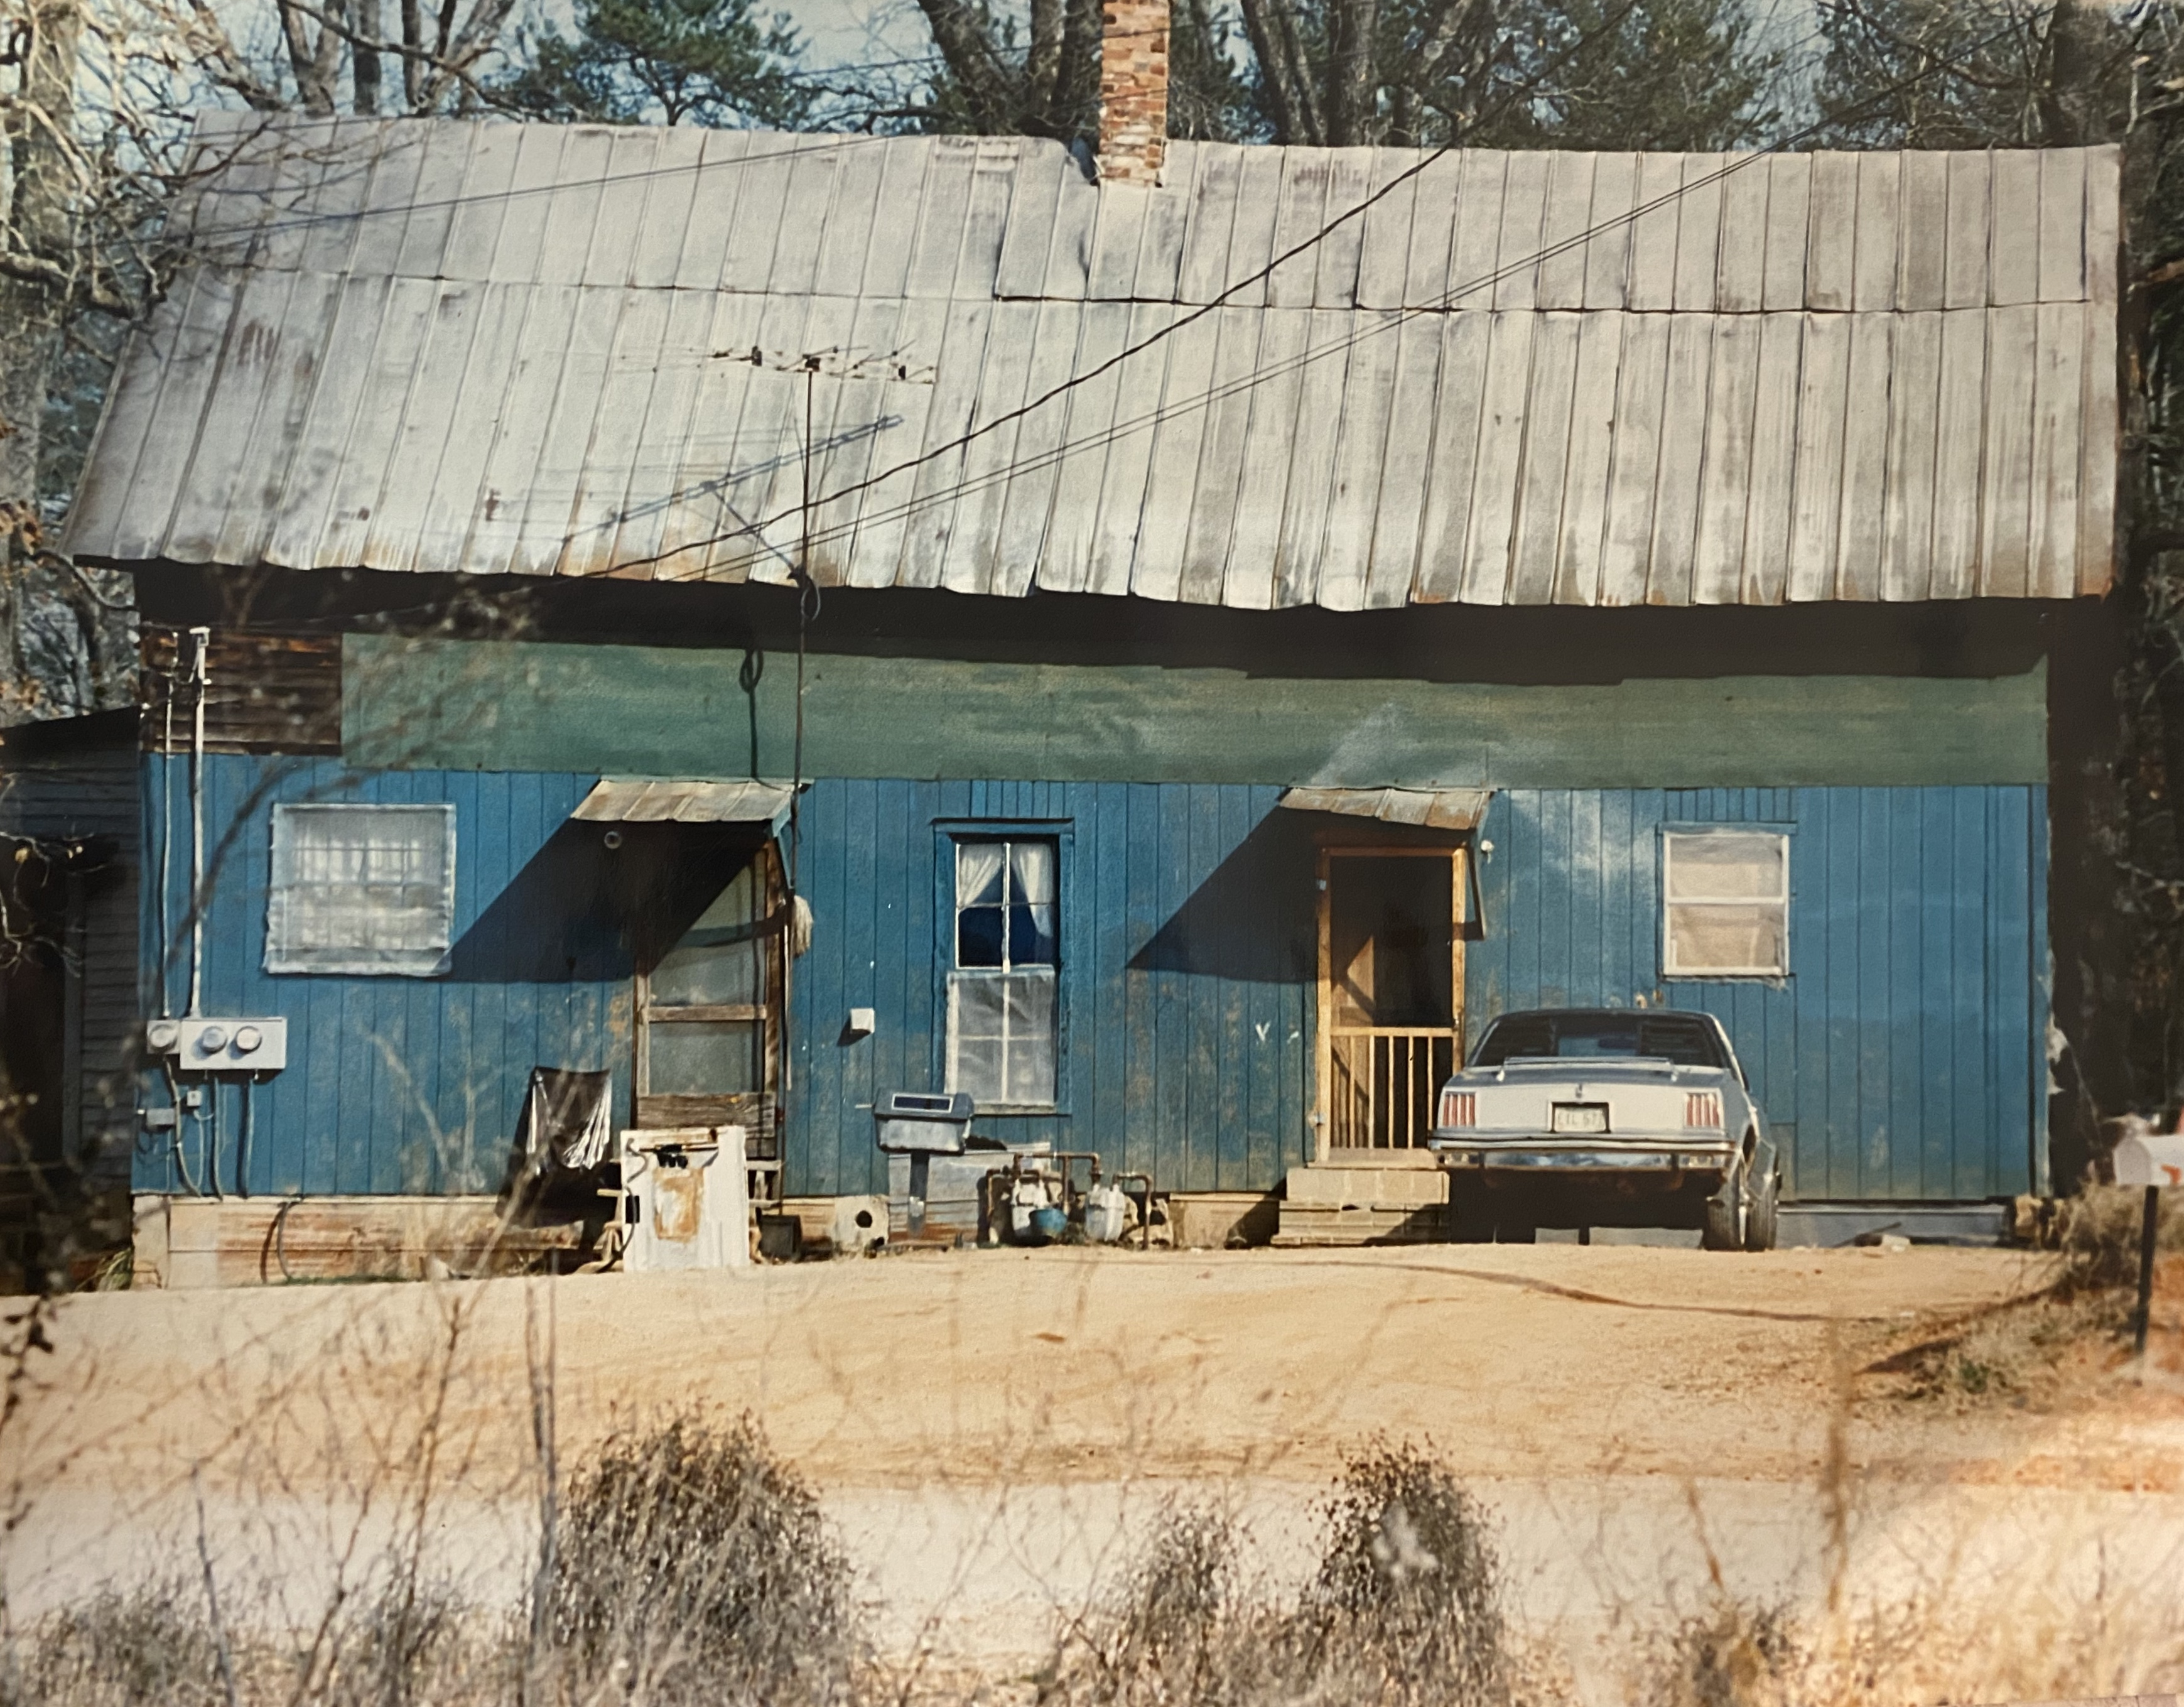 Beverly Buchanan, Saddlebag House Clarke County, Georgia, n.d.. Color photograph, 16 x 20 inches. Image courtesy Andrew Edlin gallery, New York.